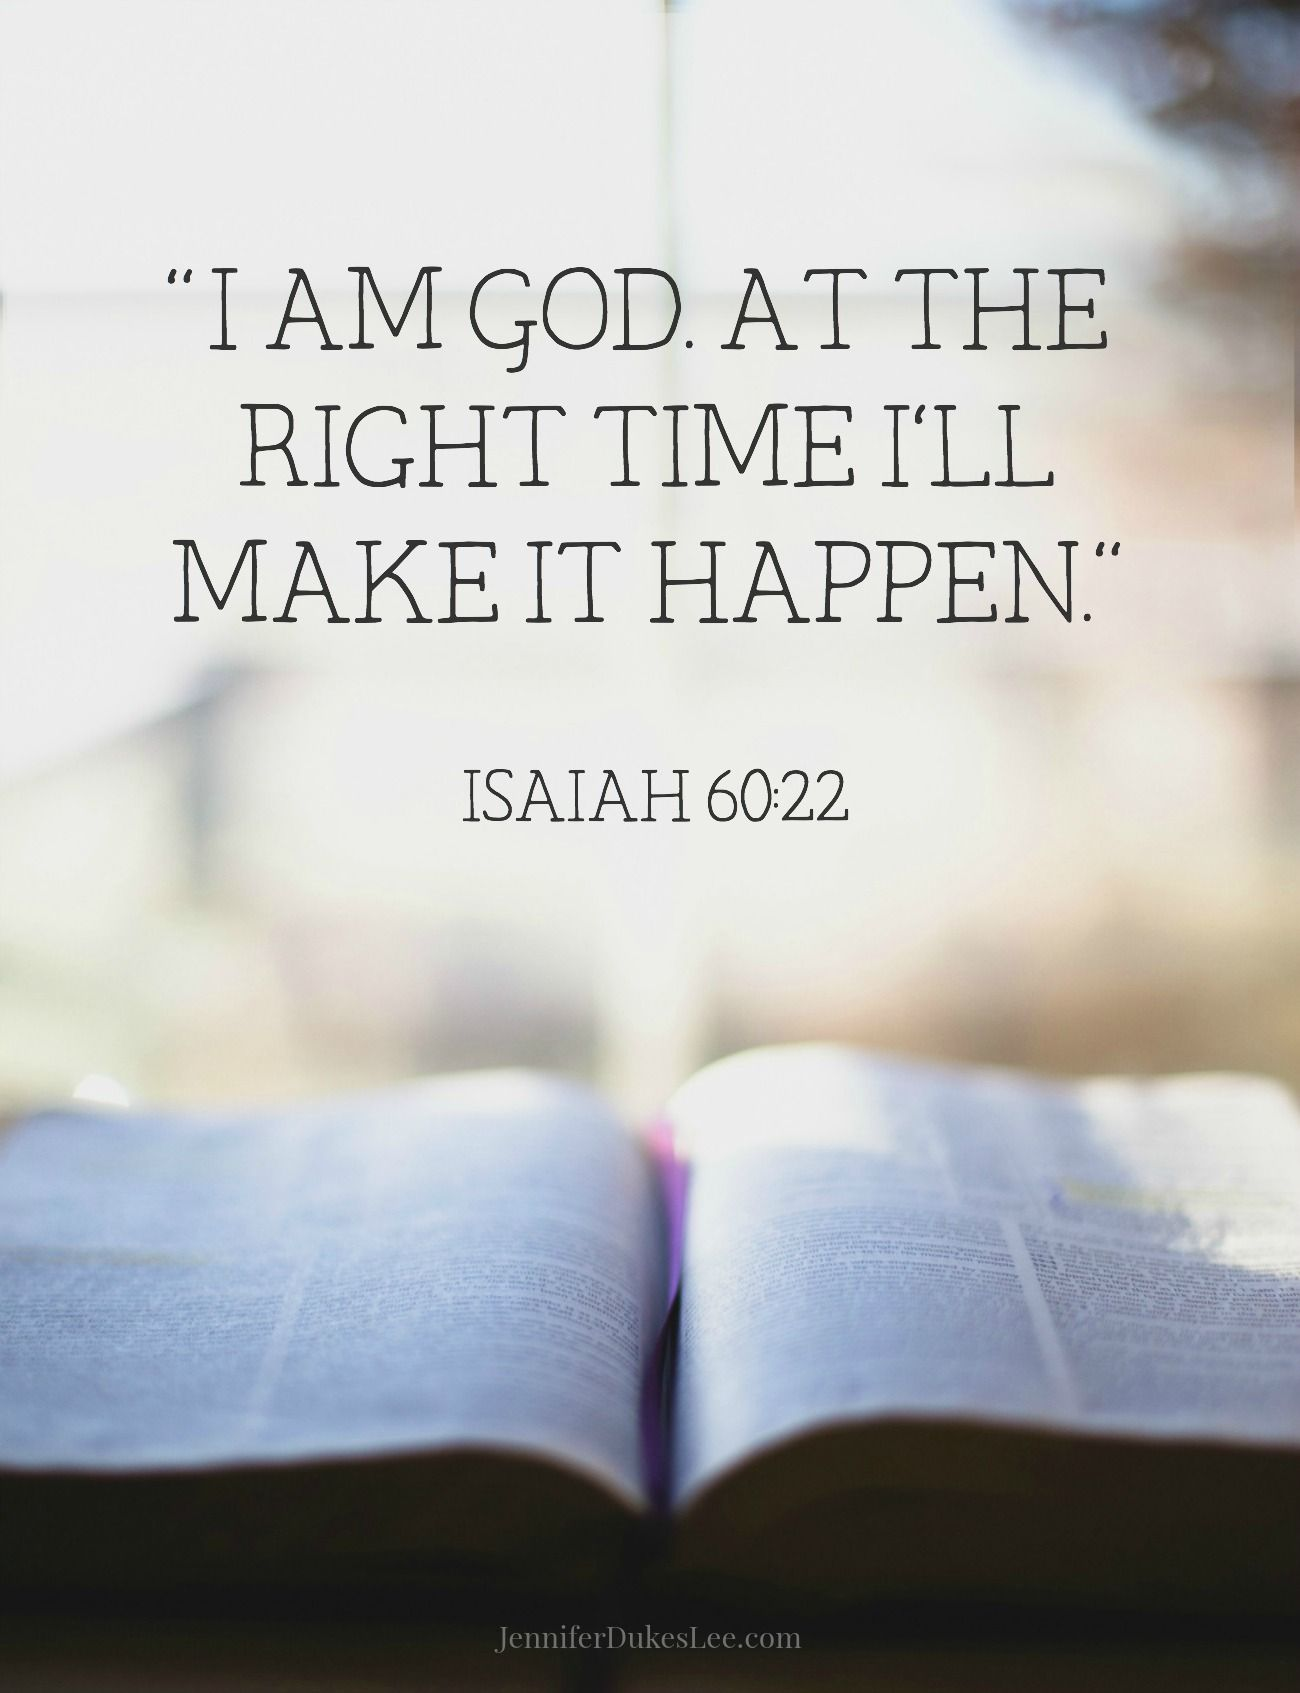 I Am God At The Right Time Ill Make It Happen Isaiah 6022